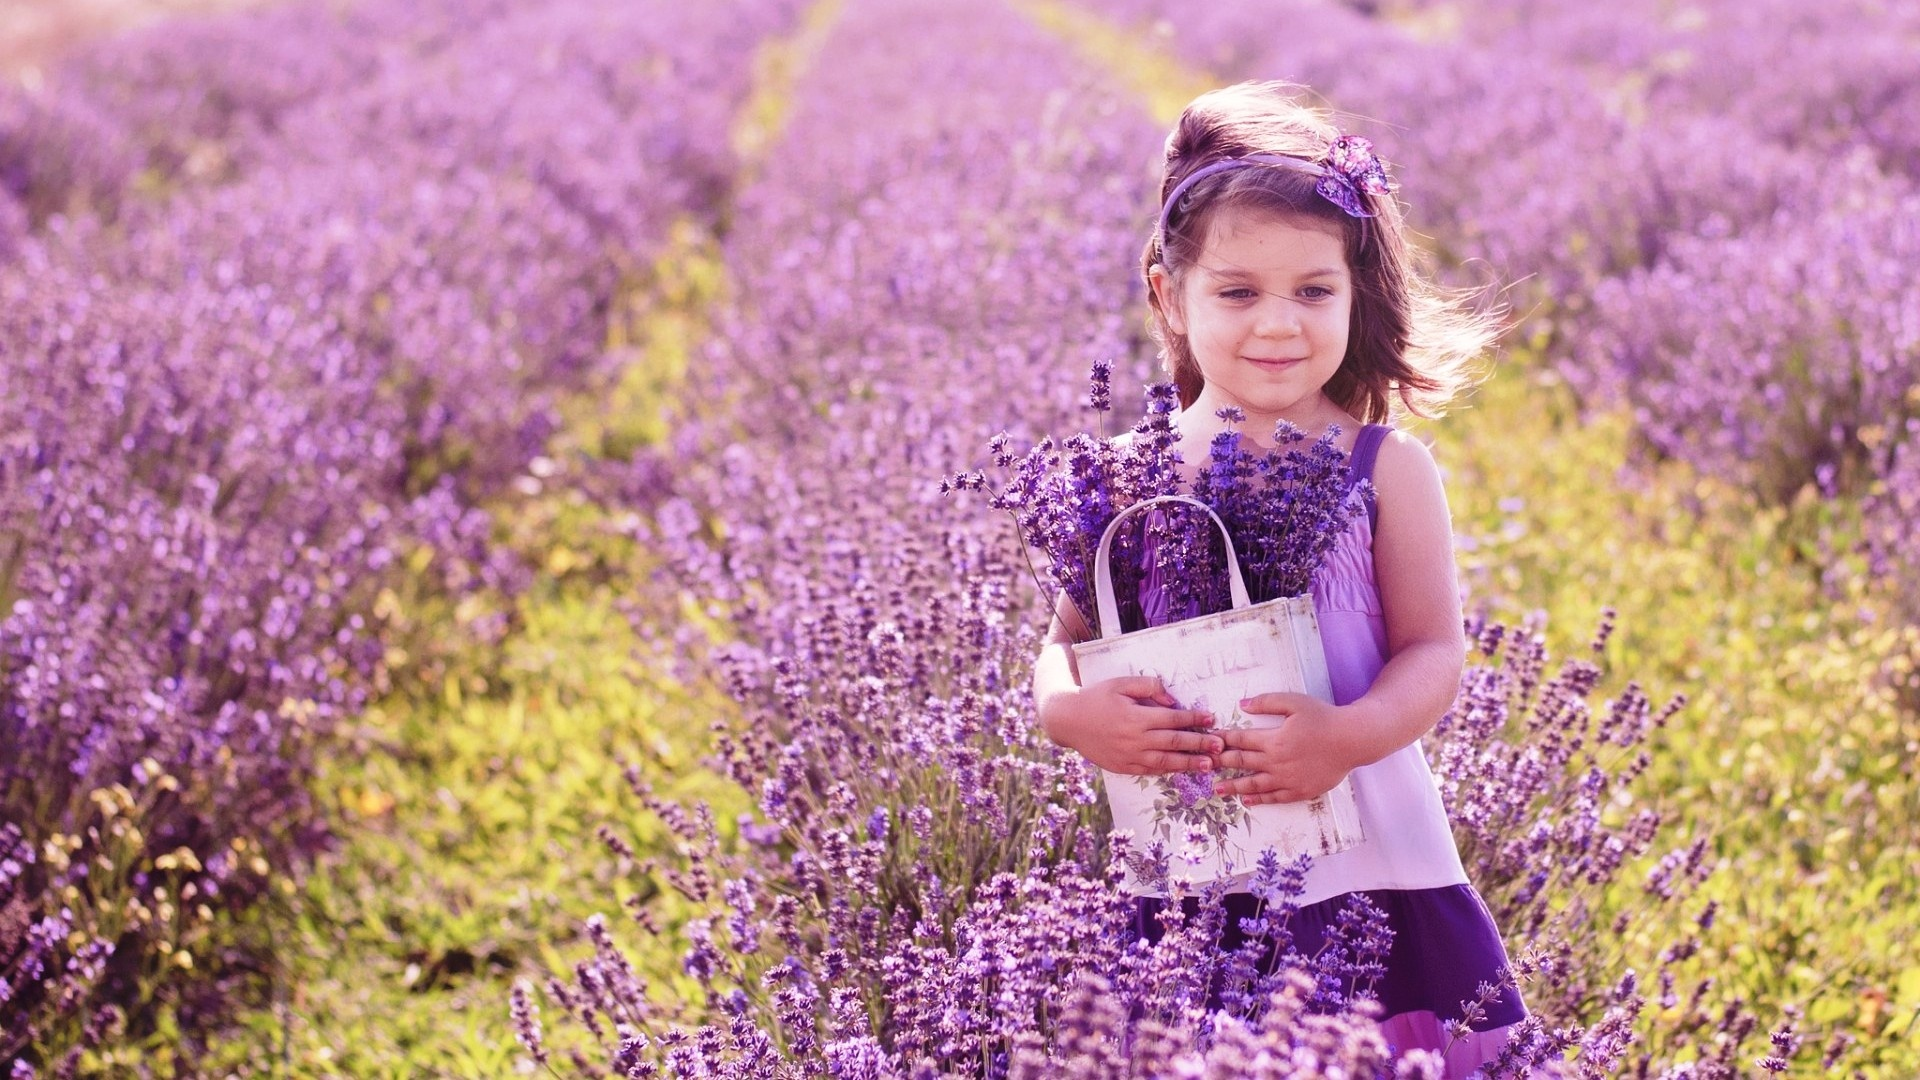 Lavender Flowers Background   Wallpaper High Definition High Quality 1920x1080